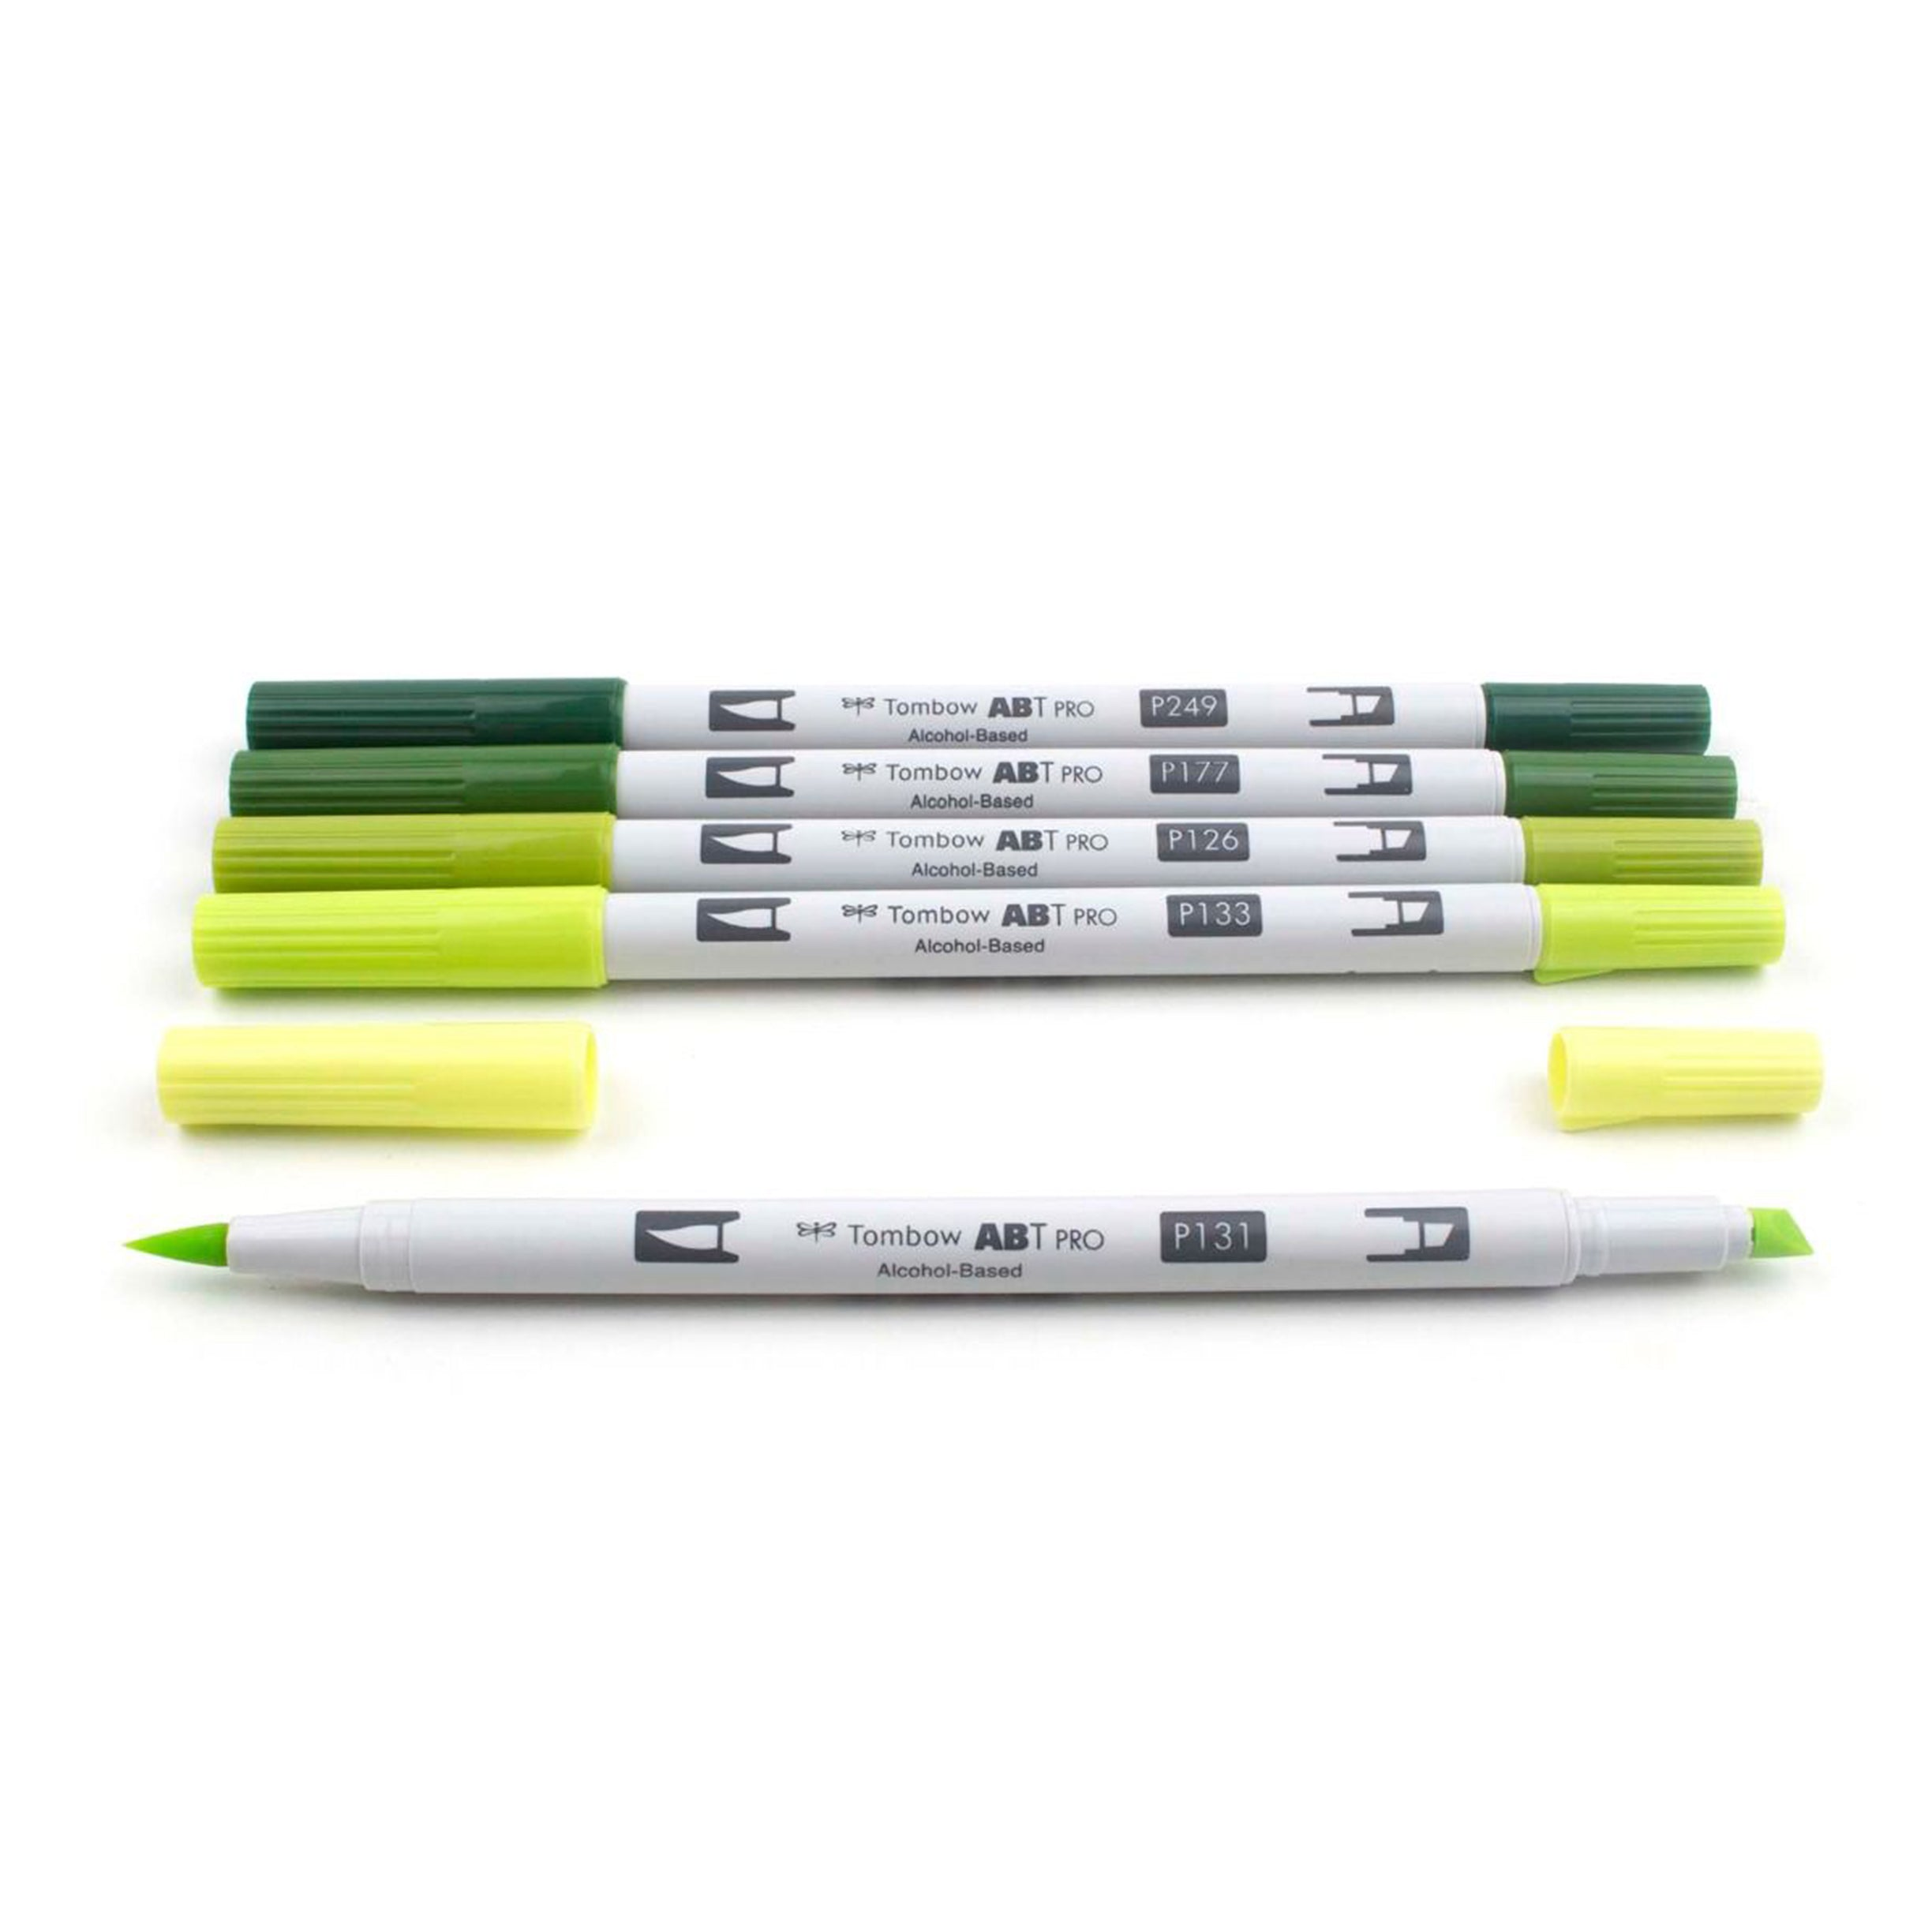 Tombow ABT PRO Alochol-Based Markers, Green Tones Set of 5